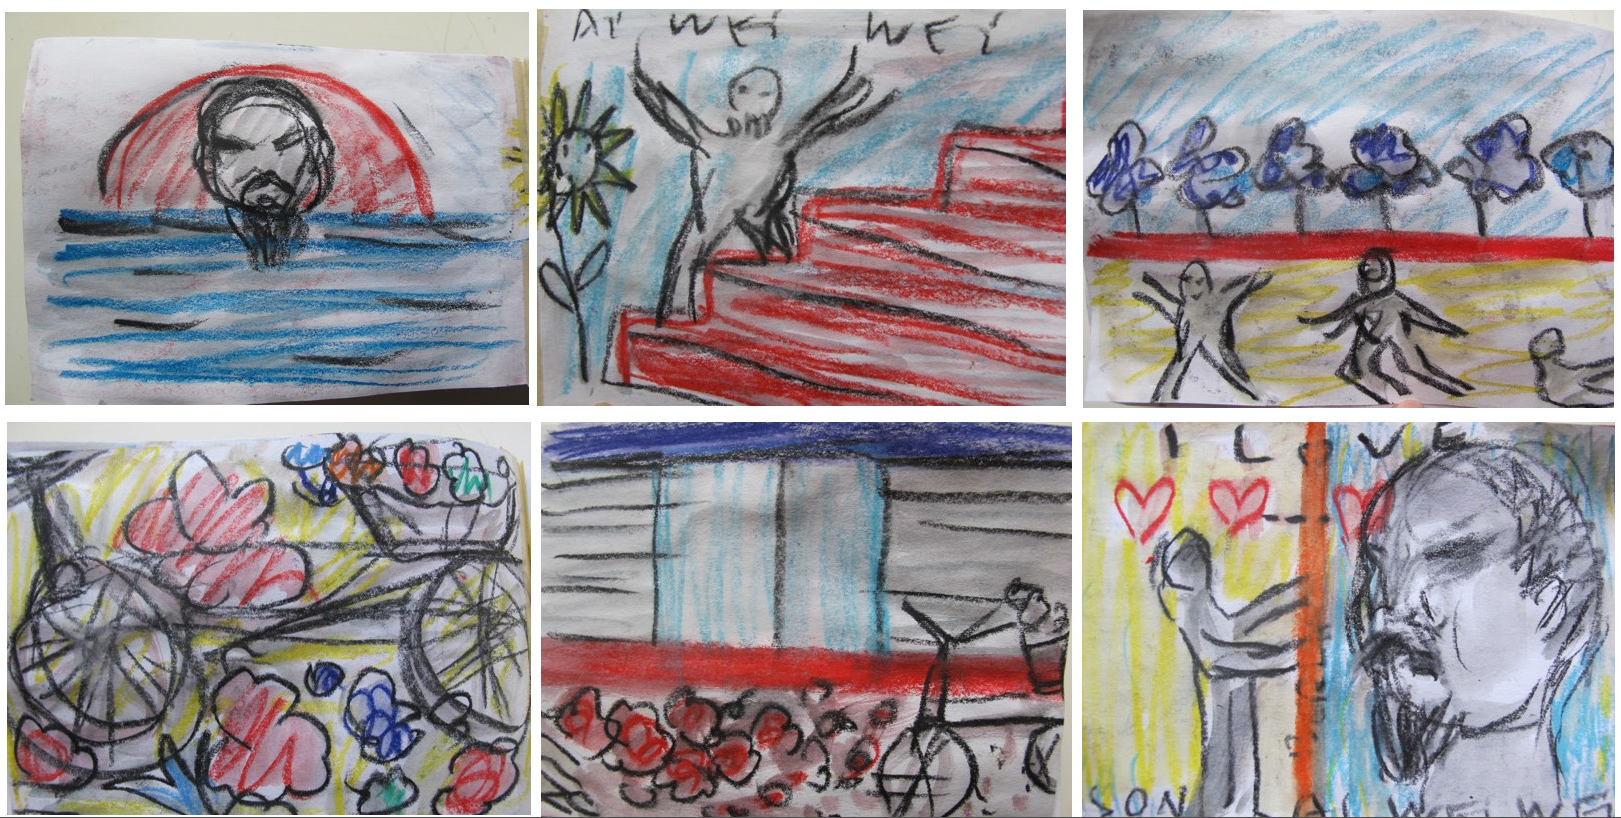 IoanaGeorgescuDrawingsM-S_2012-14_Page_18.jpg